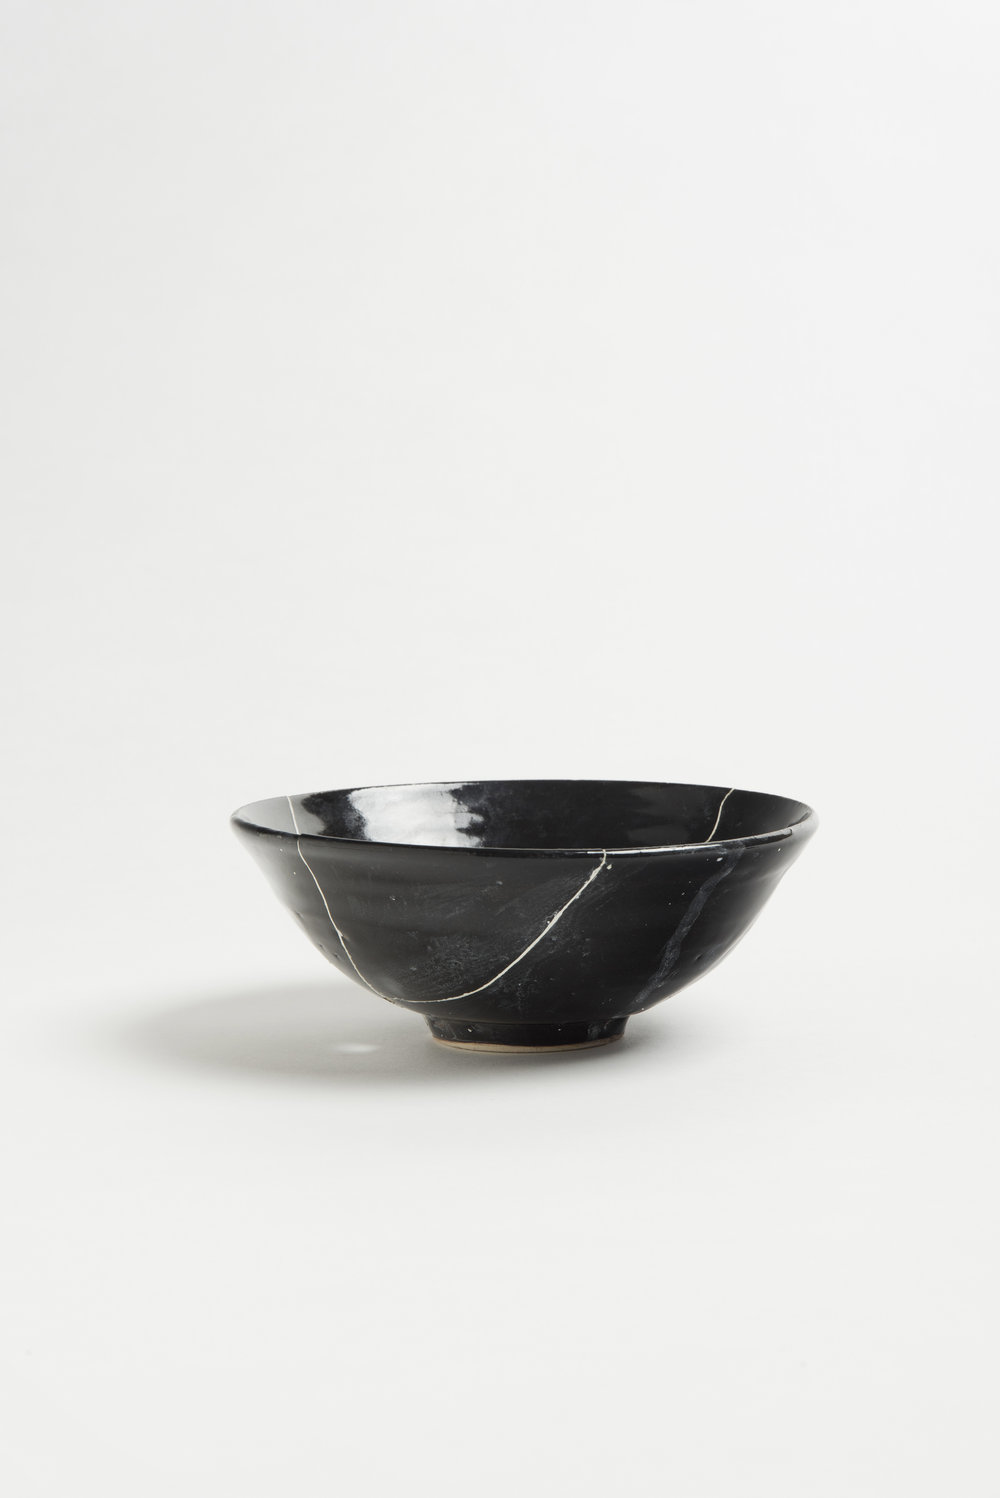 black-fracture-series-bowl-romy-northover-ceramics-the-garnered-60.jpg